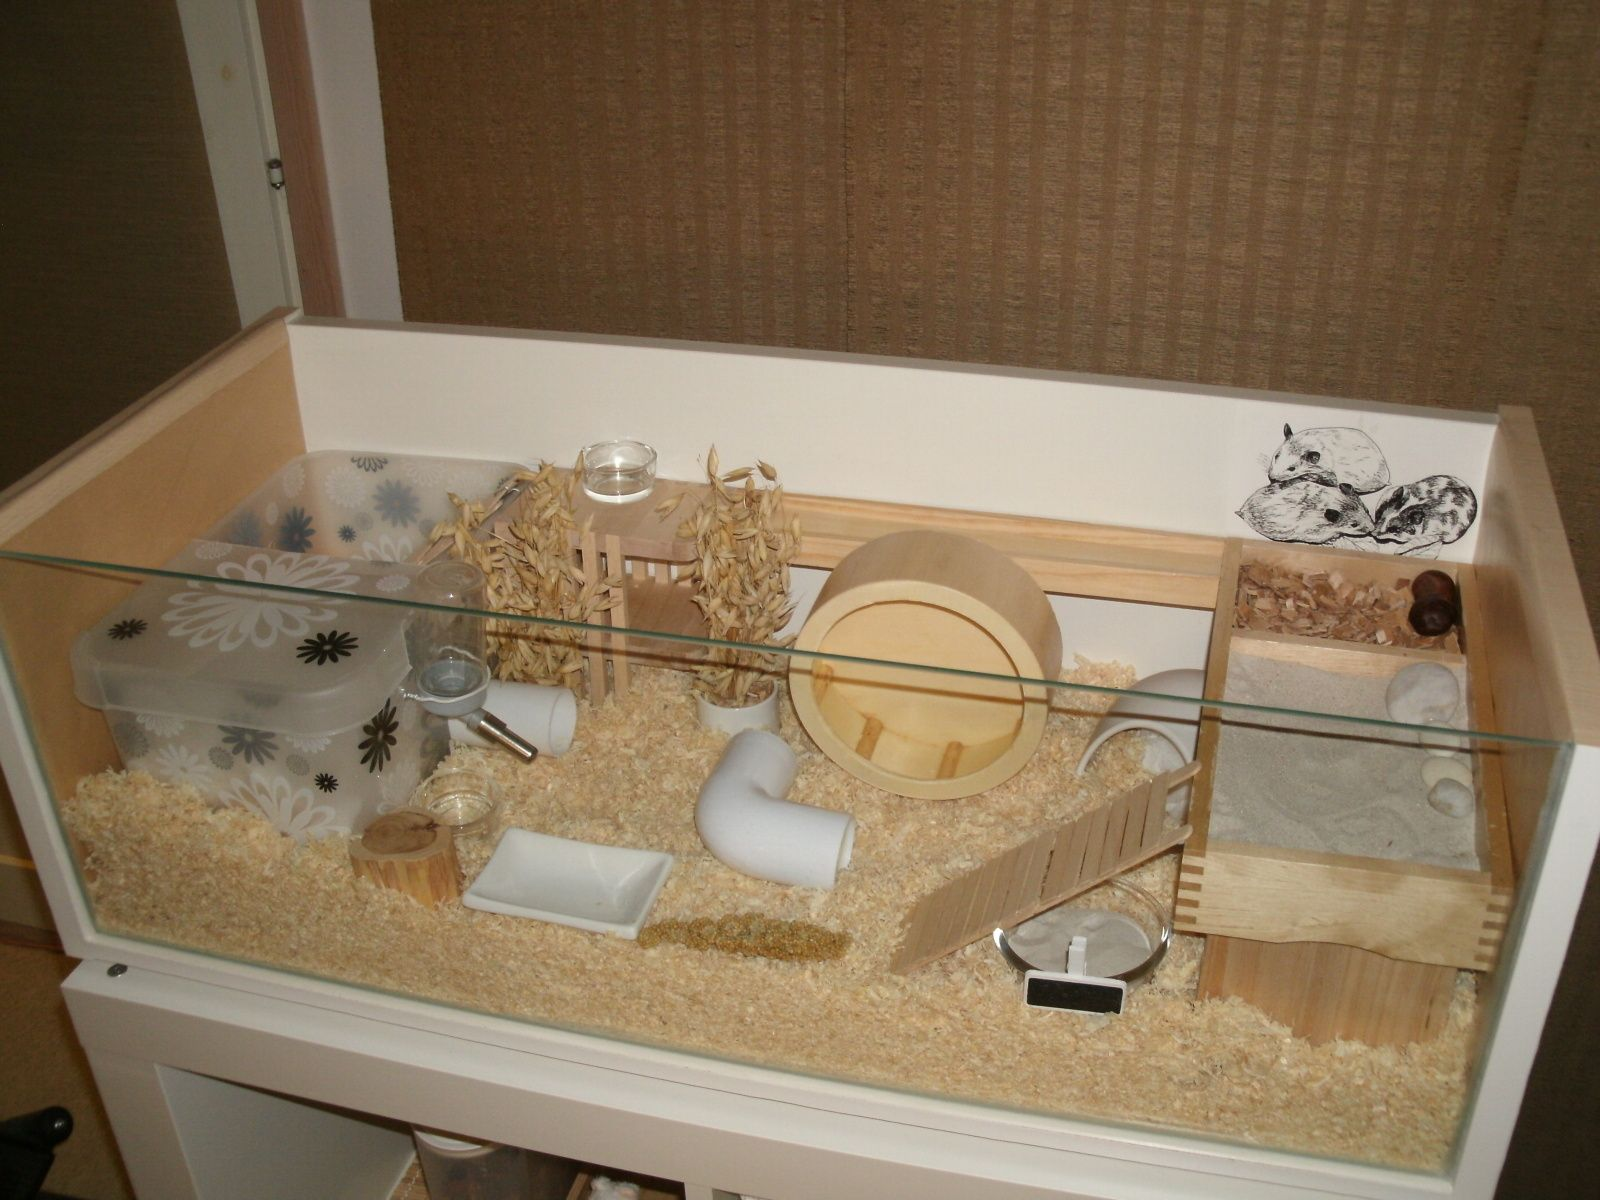 Best 25 hamster cages ideas on pinterest hamster ideas for Small guinea pig cages for sale